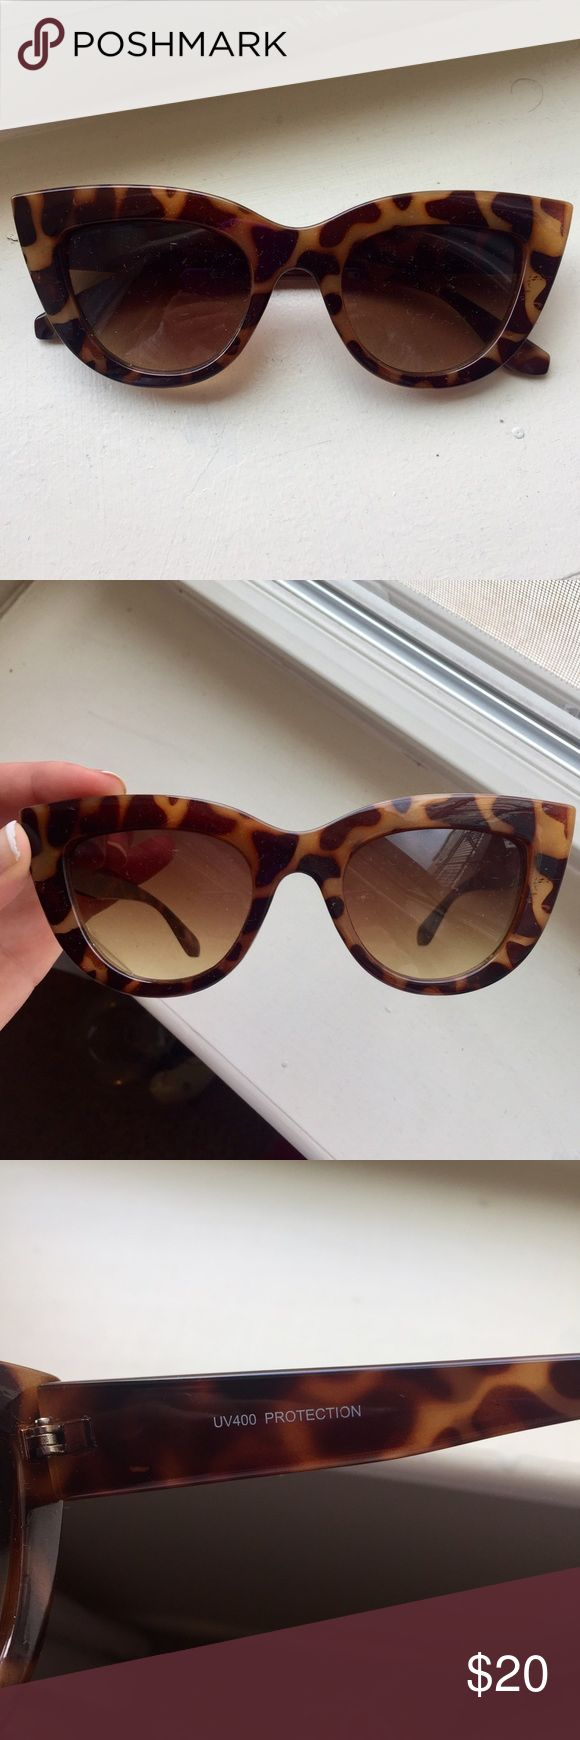 Fake Quay Sunglasses off brand Quay Sunnies, look identitcal to the kitty Quay glasses!! Accessories Sunglasses